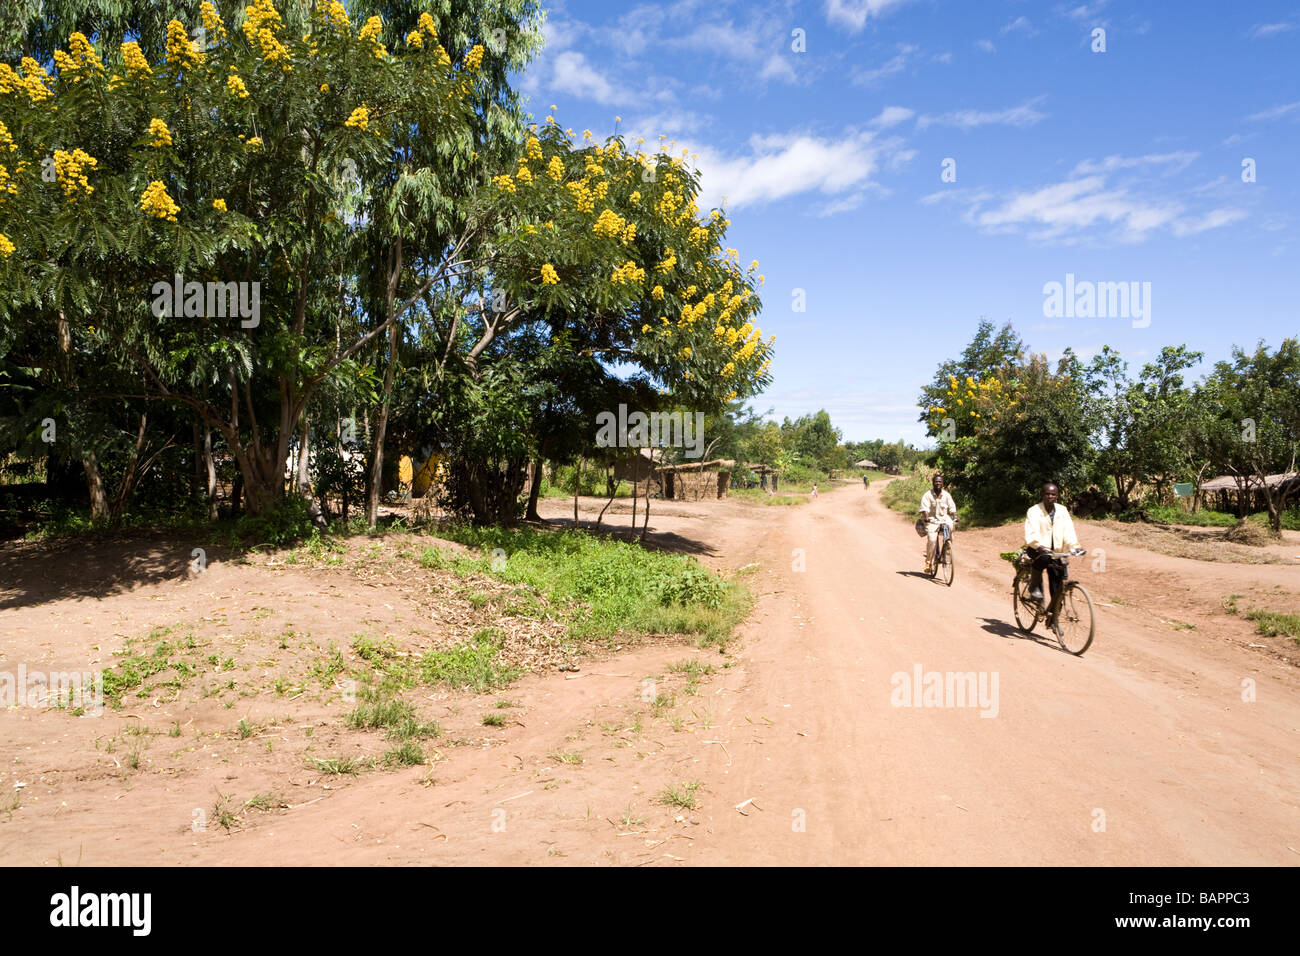 Acacia trees in flower beside the dirt track road through the village of Nyombe, Malawi, Africa - Stock Image